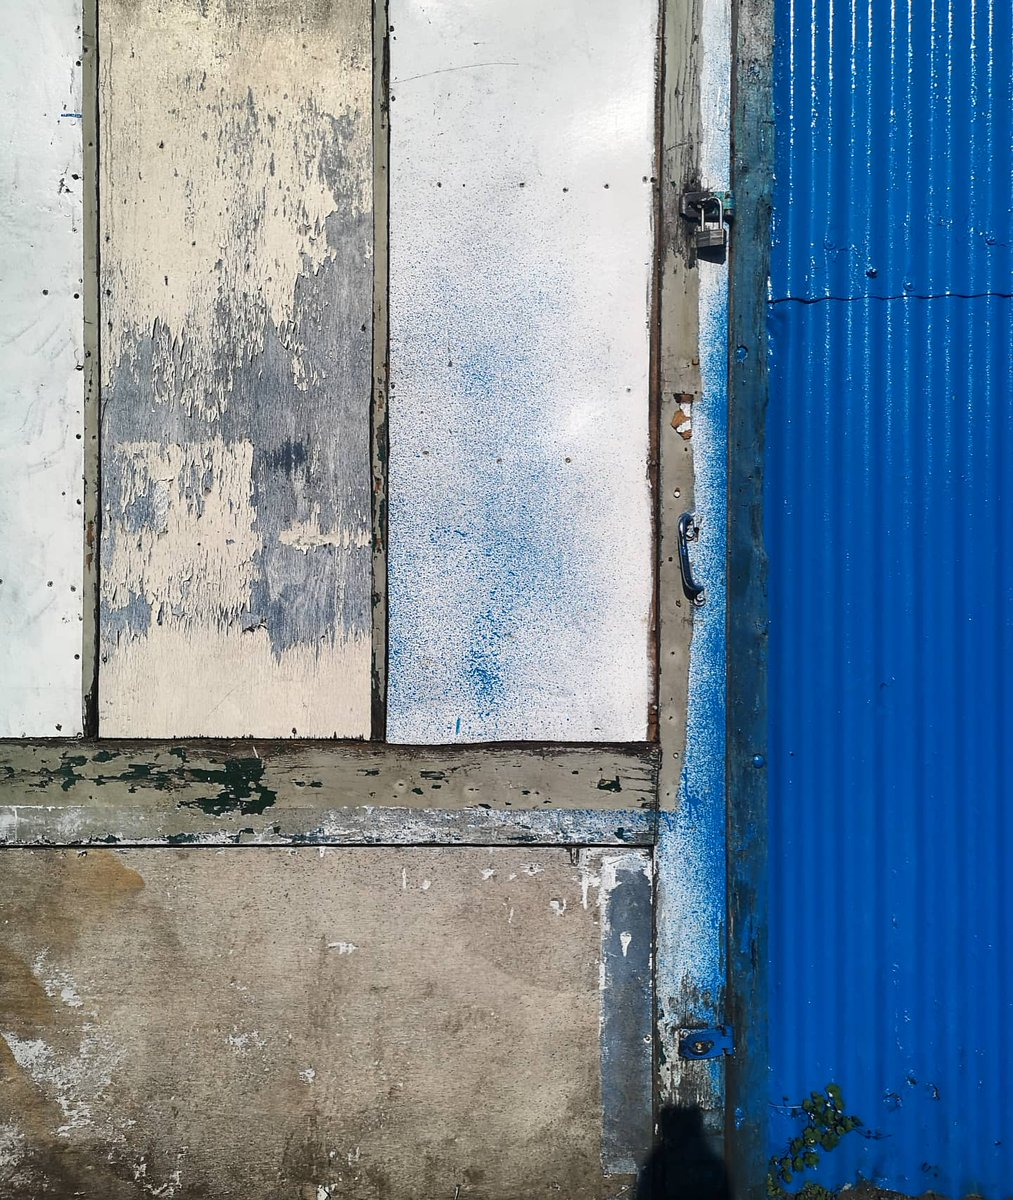 It's an admin kinda day for me today (don't worry I have coffee!) so I thought I would share this snapshot of beautiful found textures from 1 of my lockdown walks- I love the pop of blue! #mixedmedia #mixedmediaartist #photography #texture #found #fragment #composition #textilespic.twitter.com/QnKex8i2yf